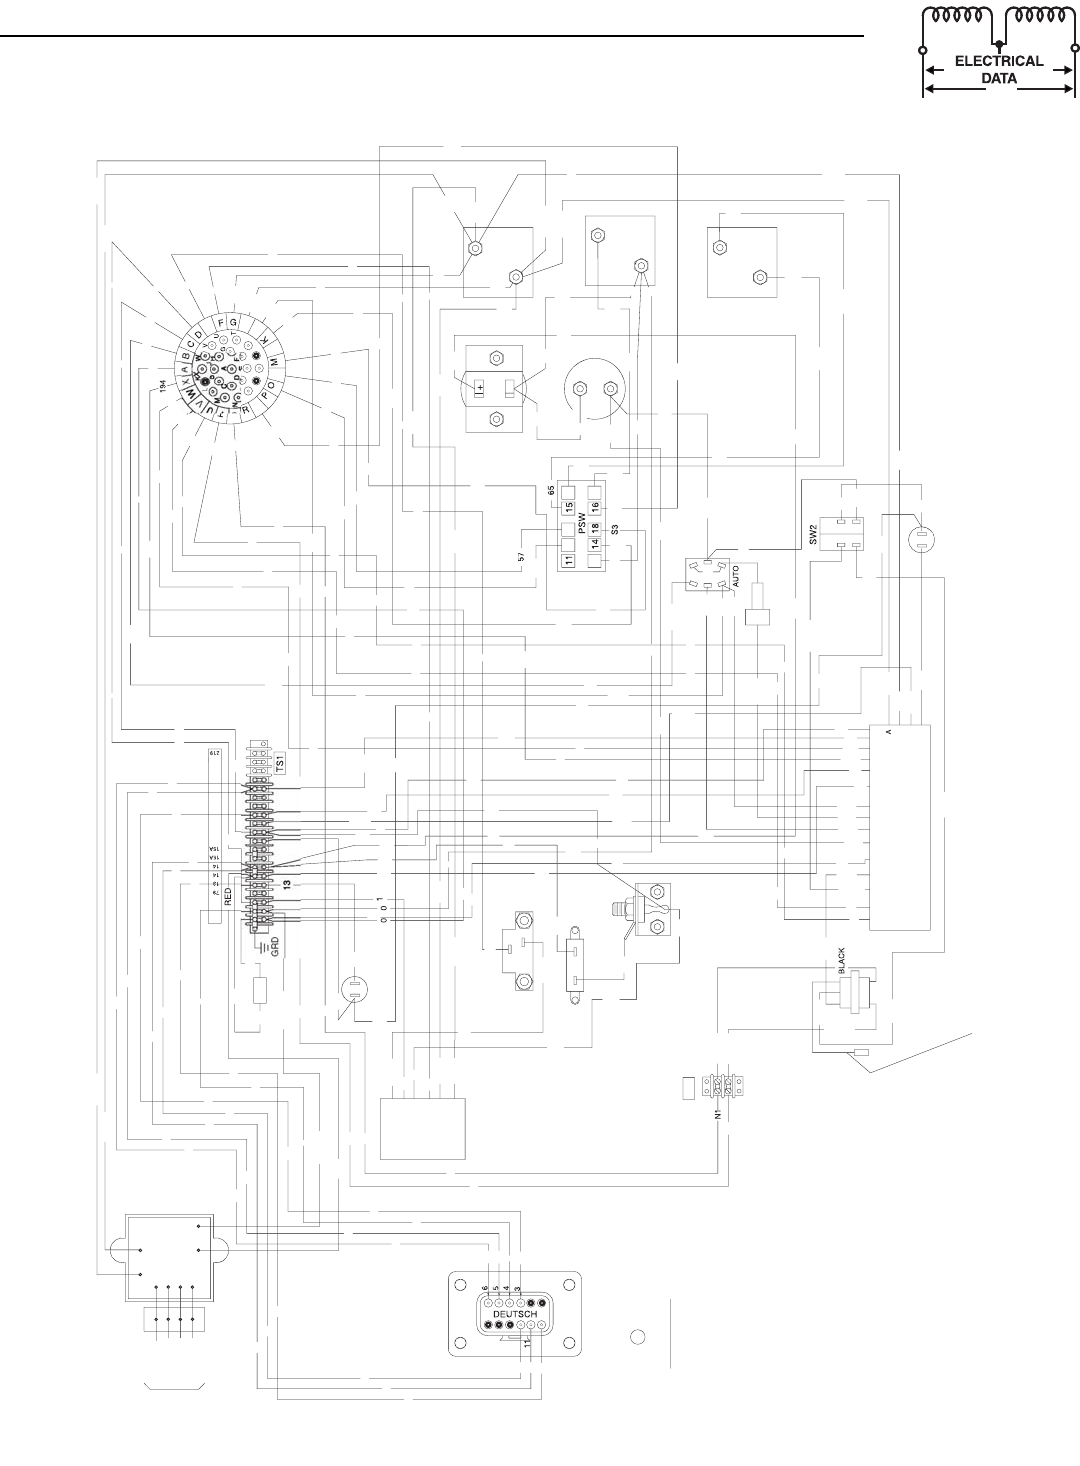 Generac power systems 0043733 0043734 0043735 0046262 0046263 0046264 wiring diagram pre pack panel 4 3l drawing no 0d4992 a